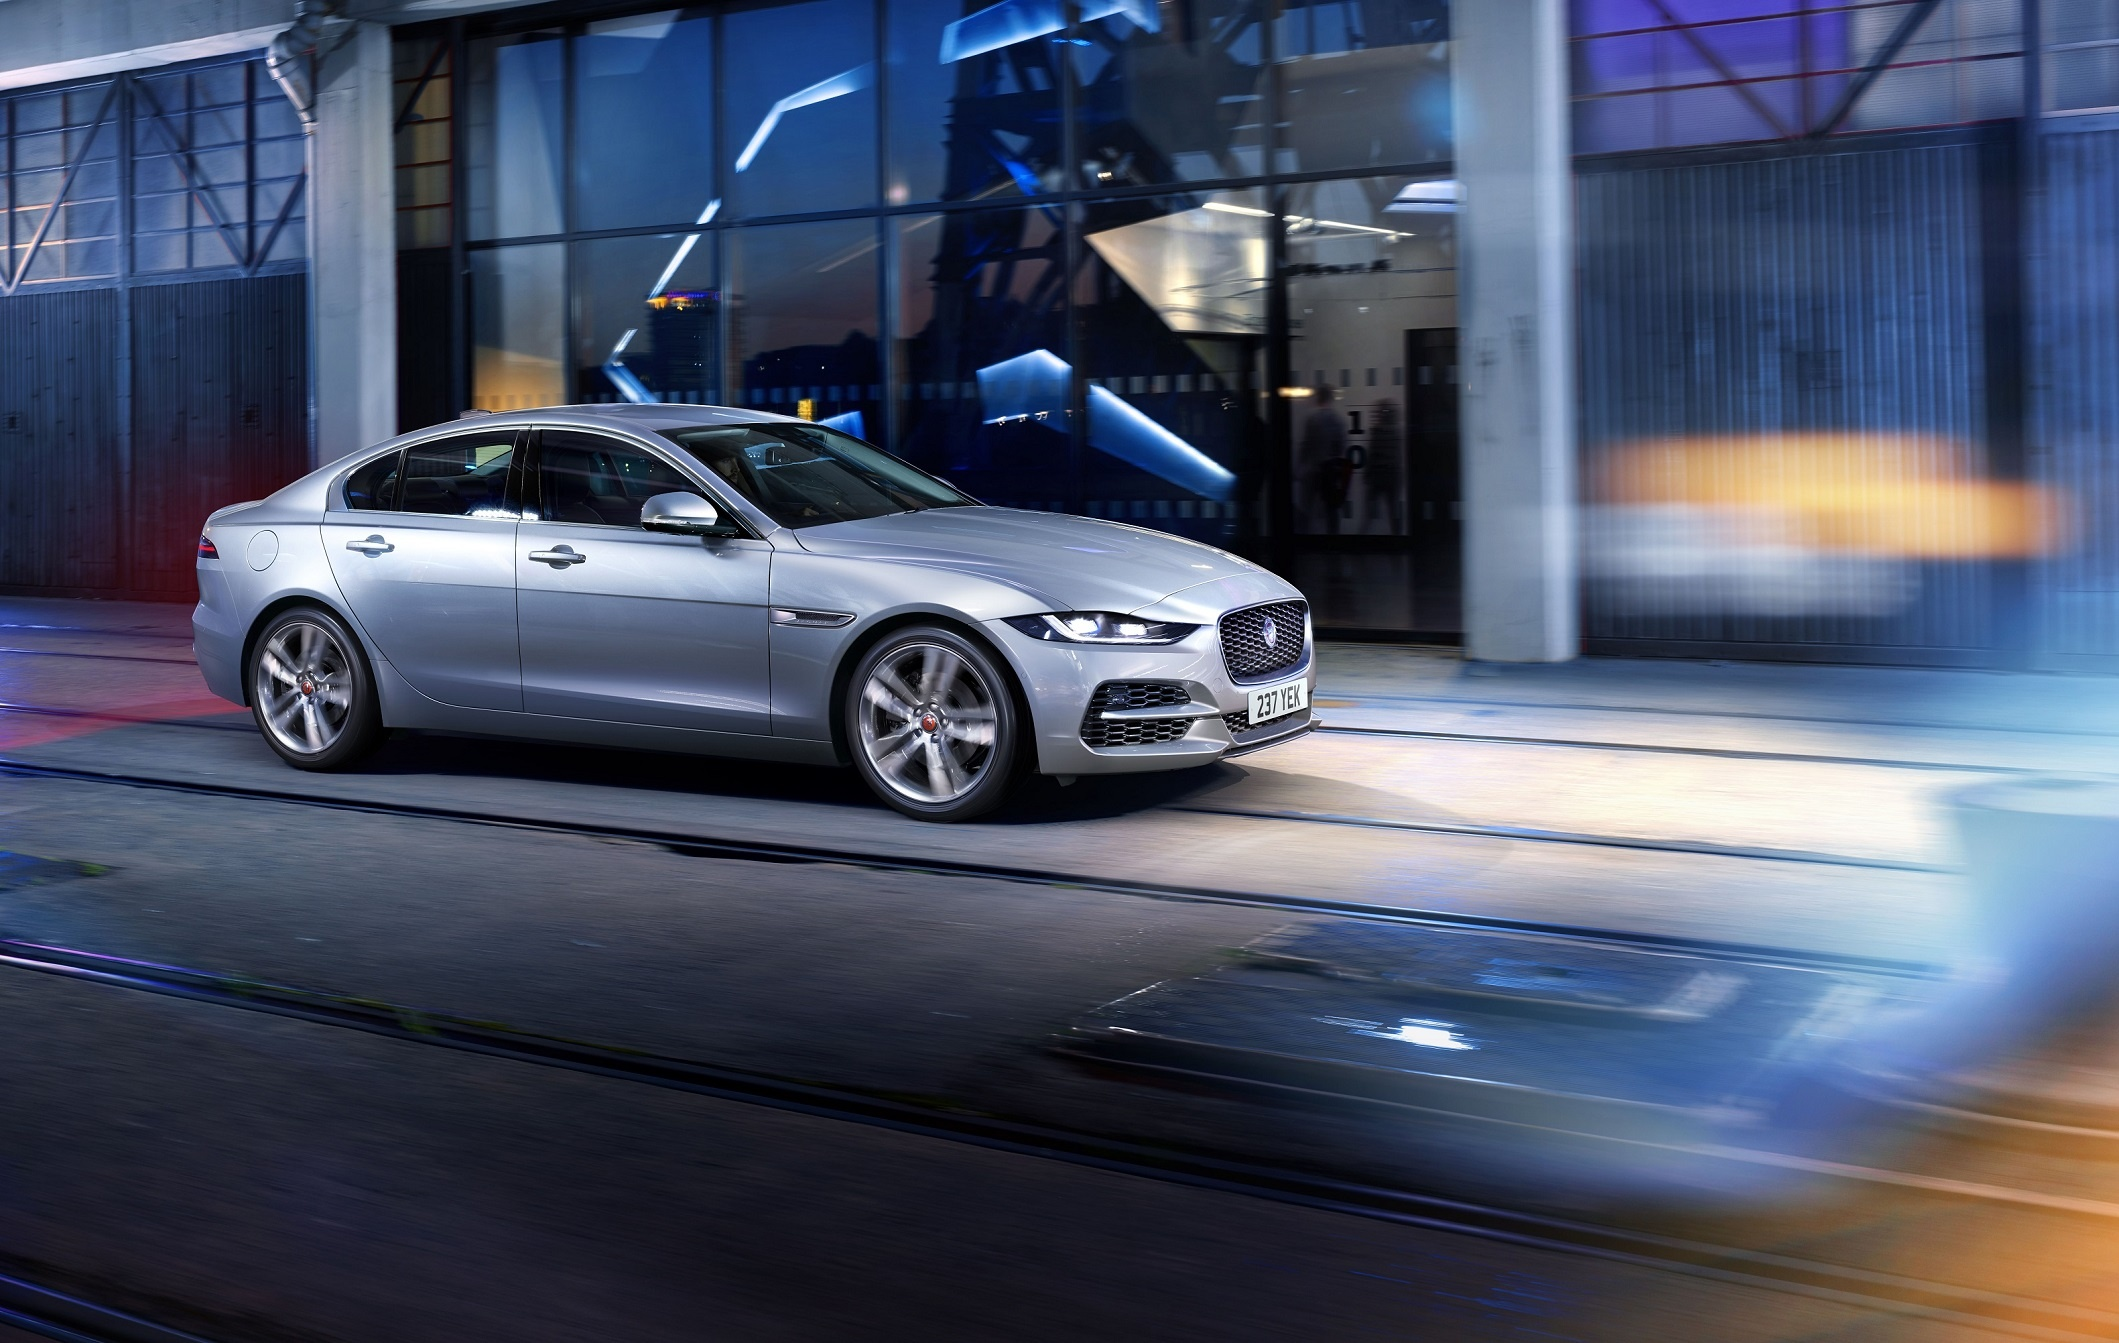 Jaguar Xe Updated With New Connected Technologies And Mild-Hybrid Power